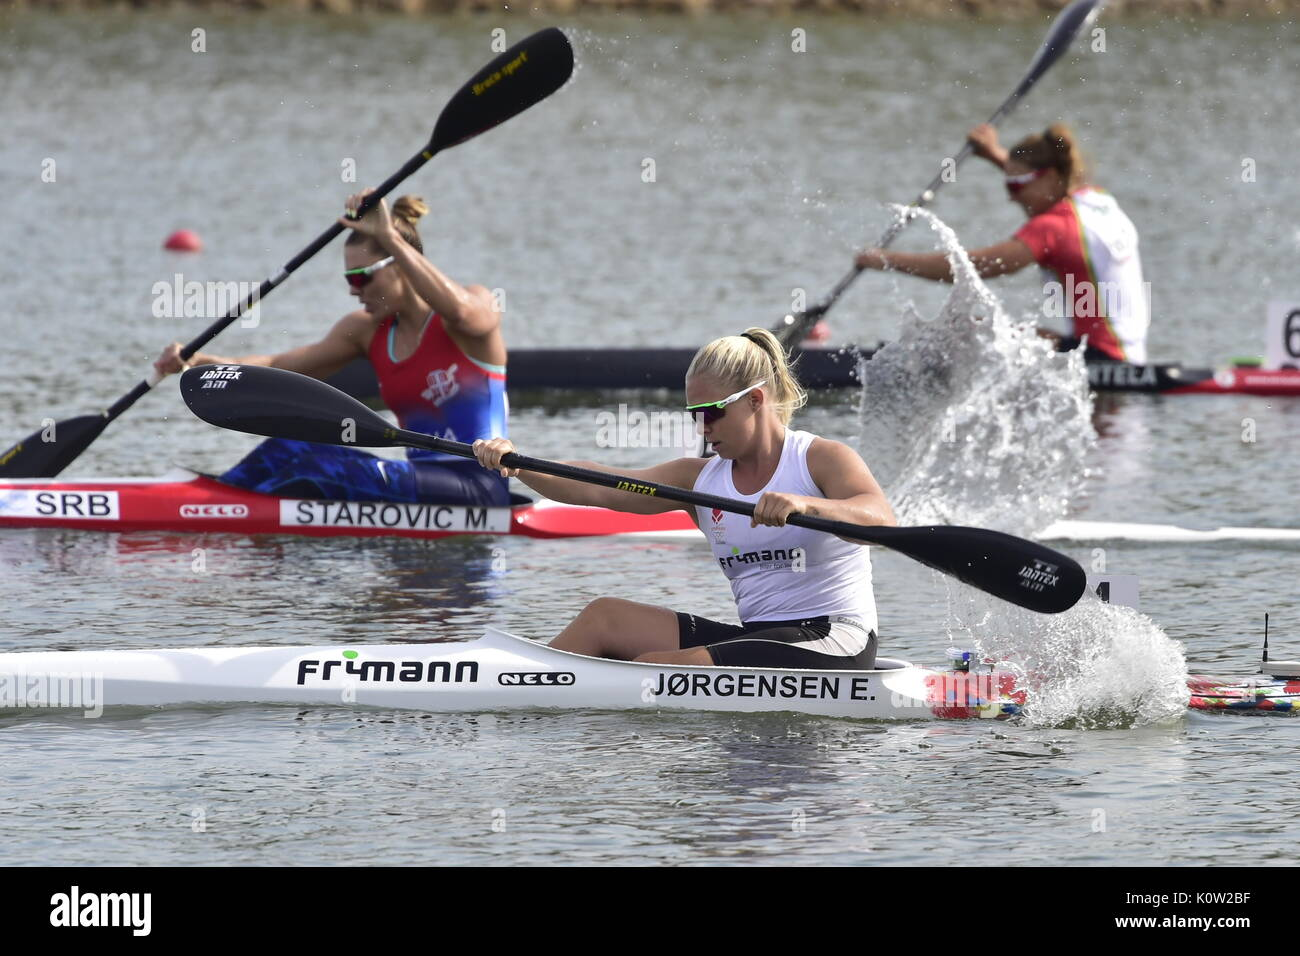 Racice, Czech Republic. 24th Aug, 2017. EMMA JORGENSEN of Denmark in action during the 2017 ICF Canoe Sprint World Championships in Racice, Czech Republic, August 24, 2017. Credit: Roman Vondrous/CTK Photo/Alamy Live News - Stock Image